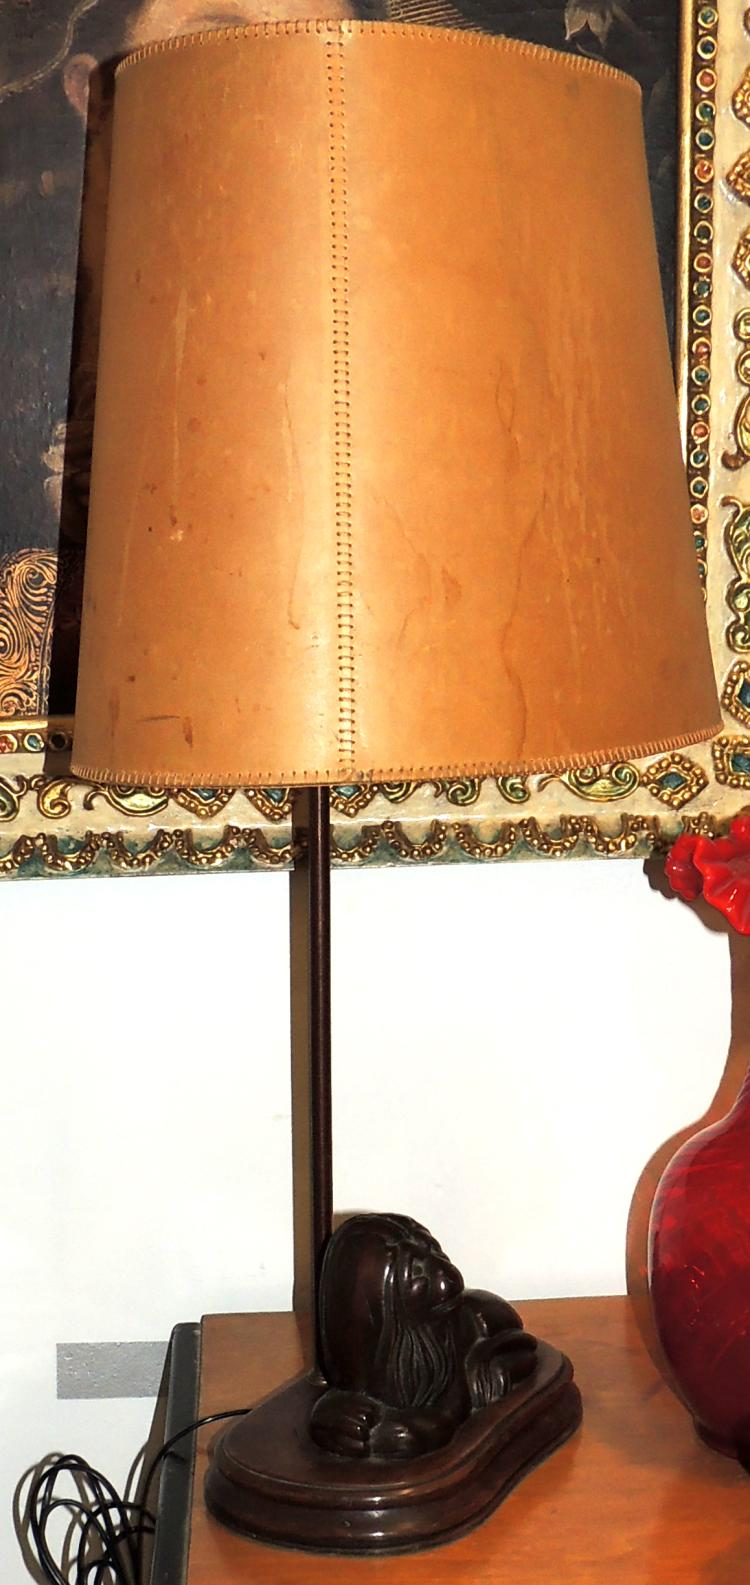 TABLE LAMP Valentí (atrib.) With lion figure in patinated metal with parchment screen.Total height: 74 cm.